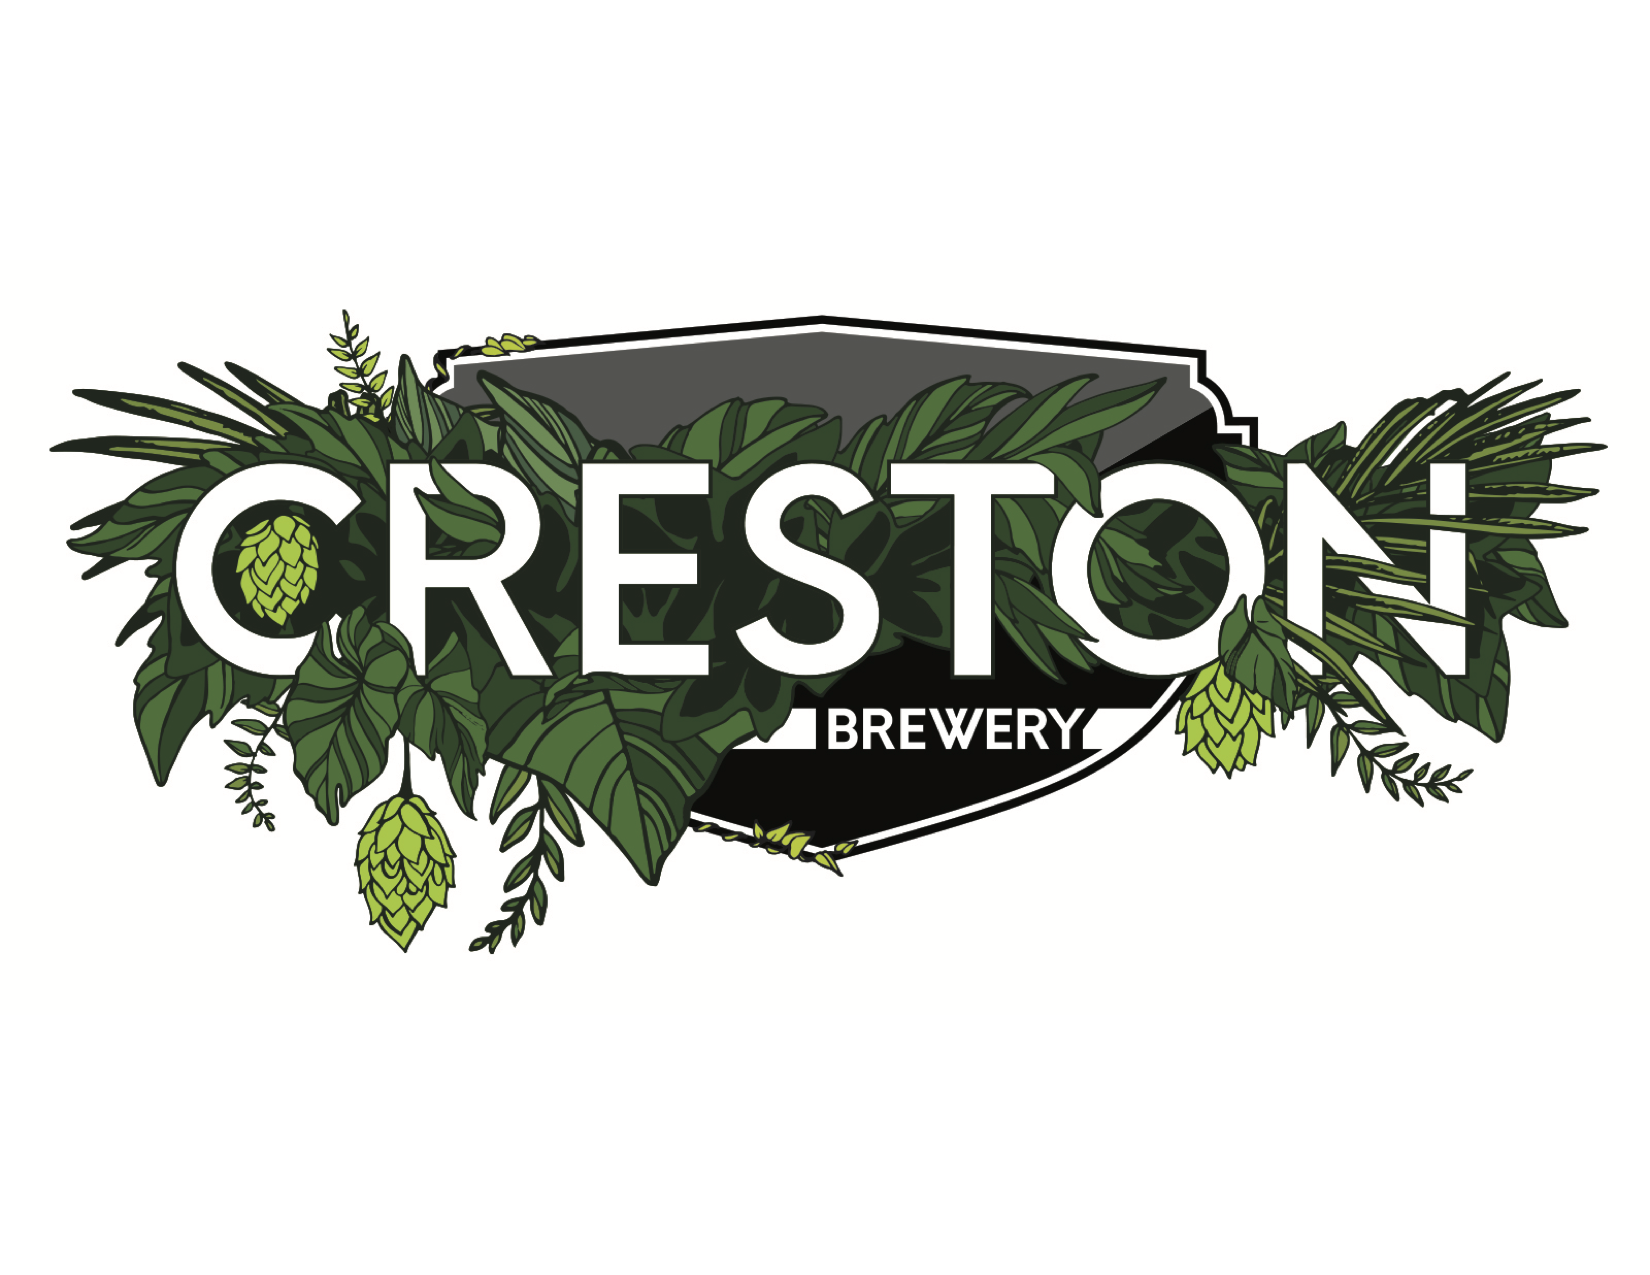 Creston Logo.png